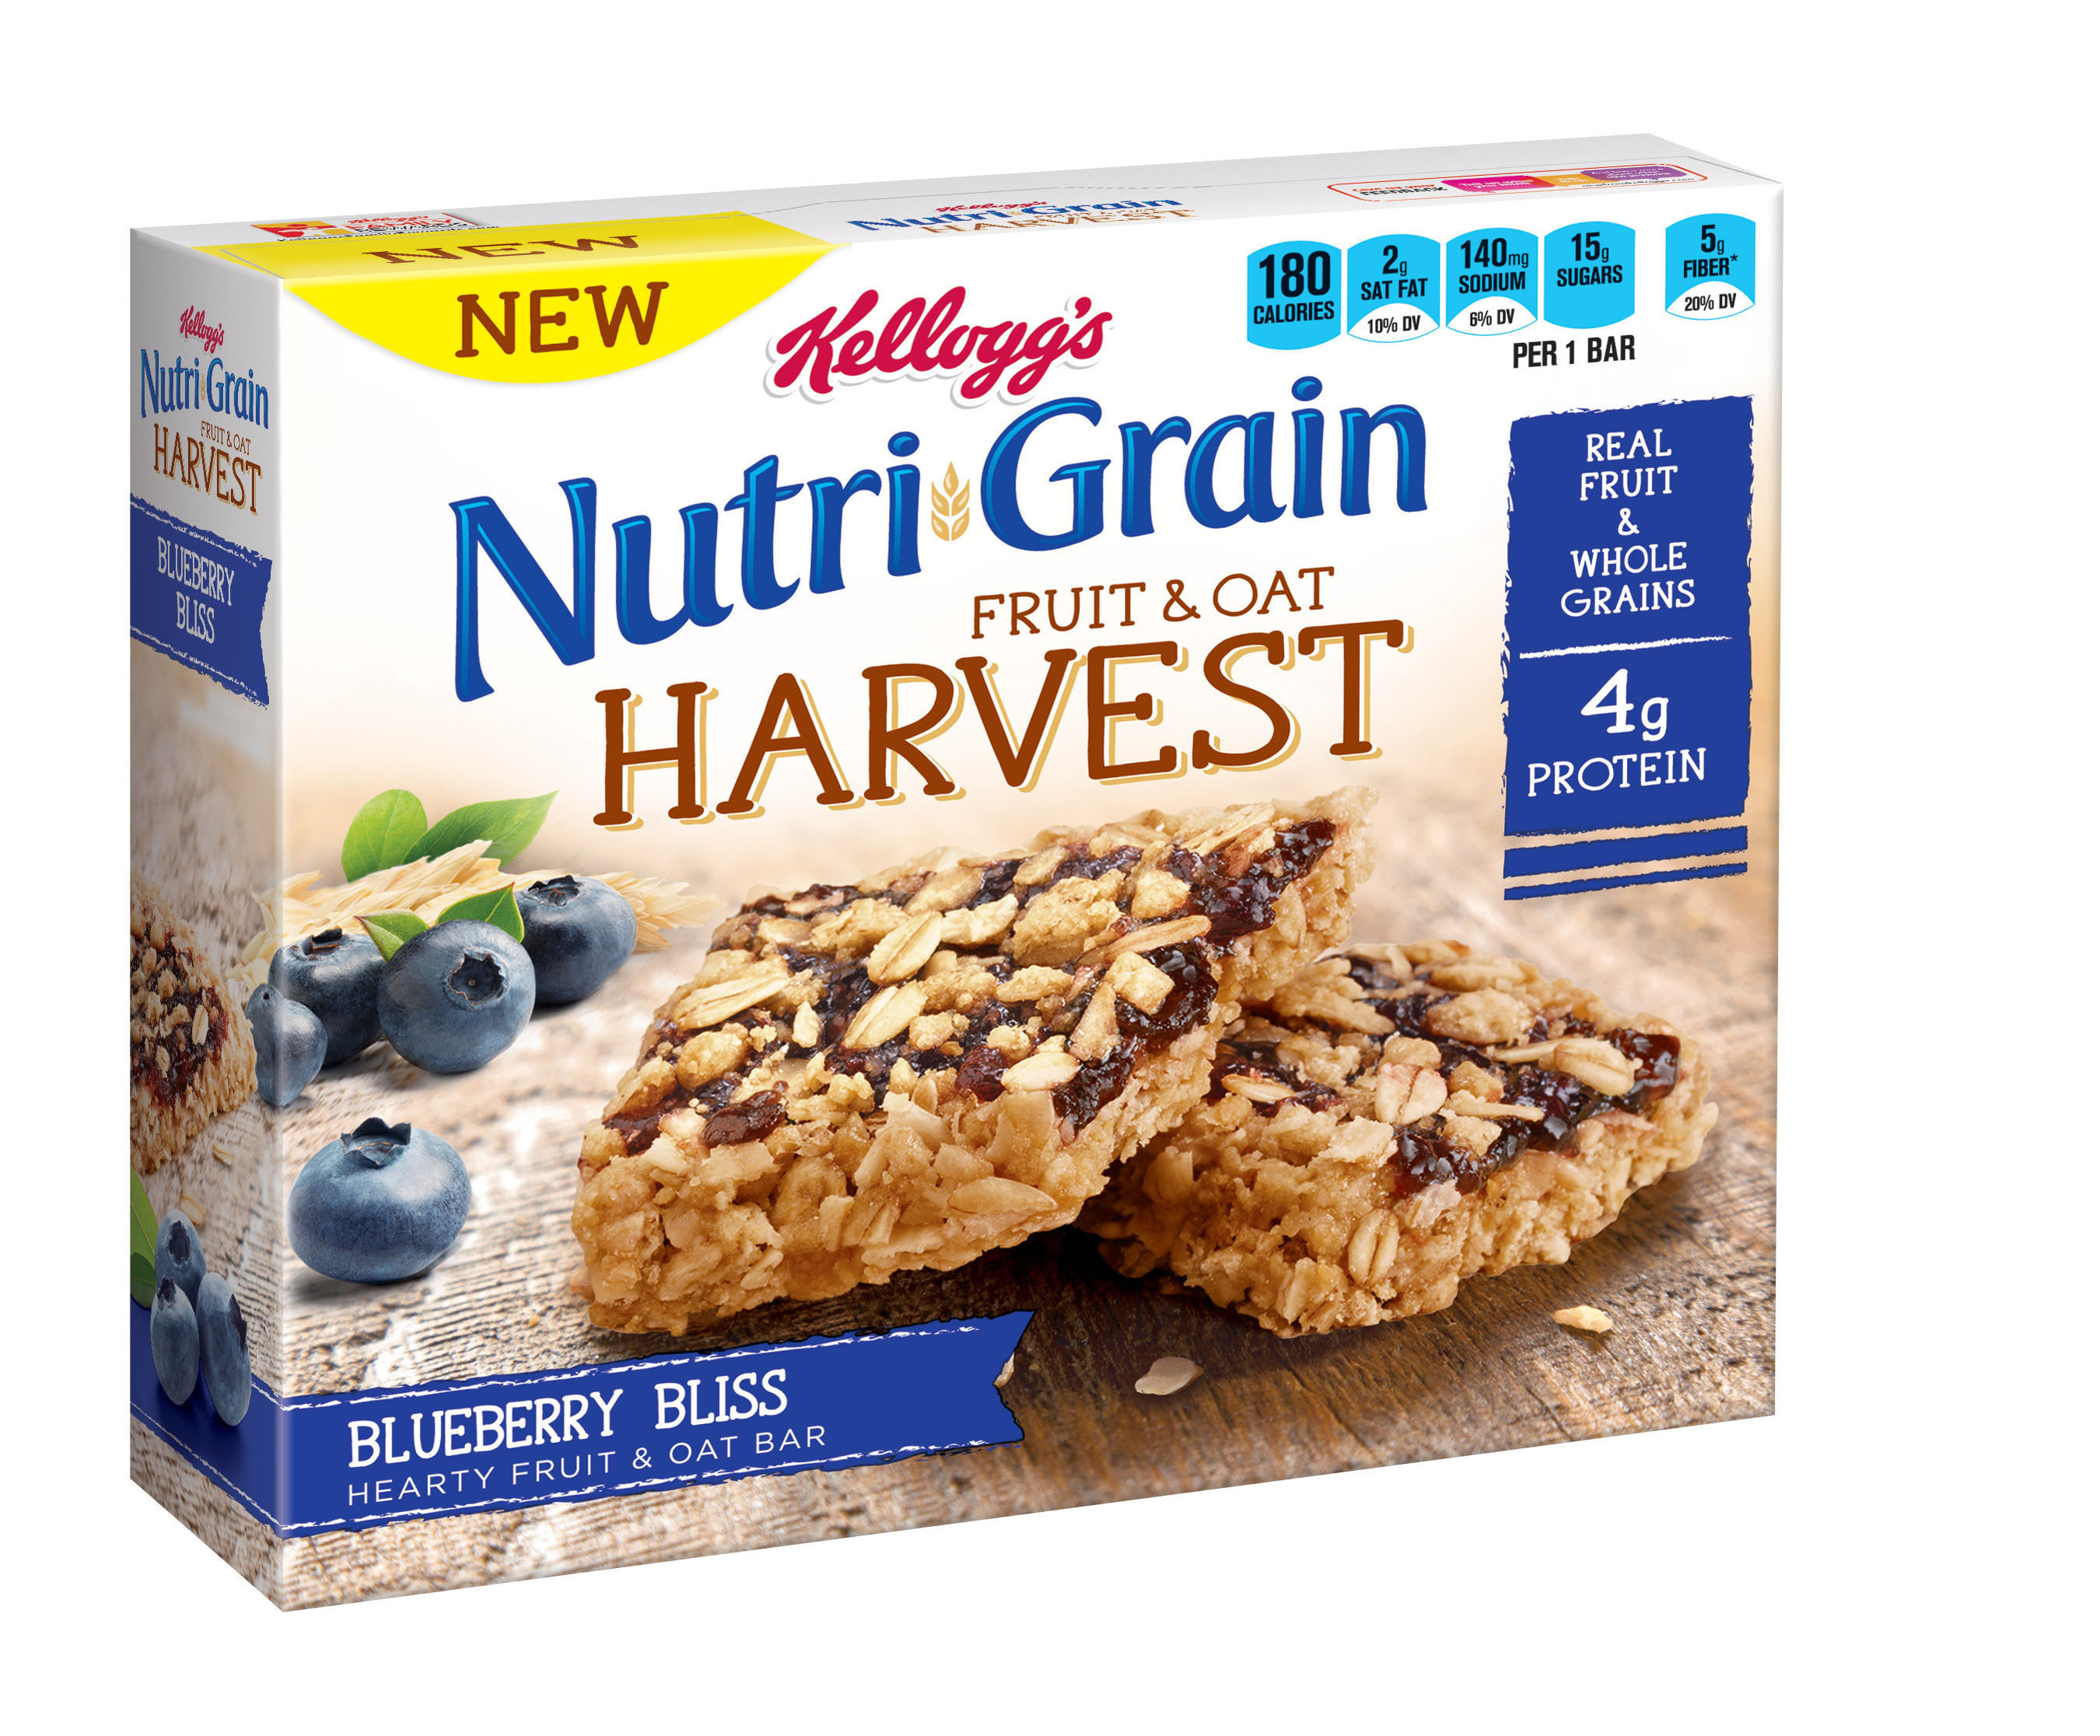 Kellogg's Nutri-Grain Fruit & Oat Harvest Blueberry Bliss cereal bar.  (PRNewsFoto/Kellogg Company)